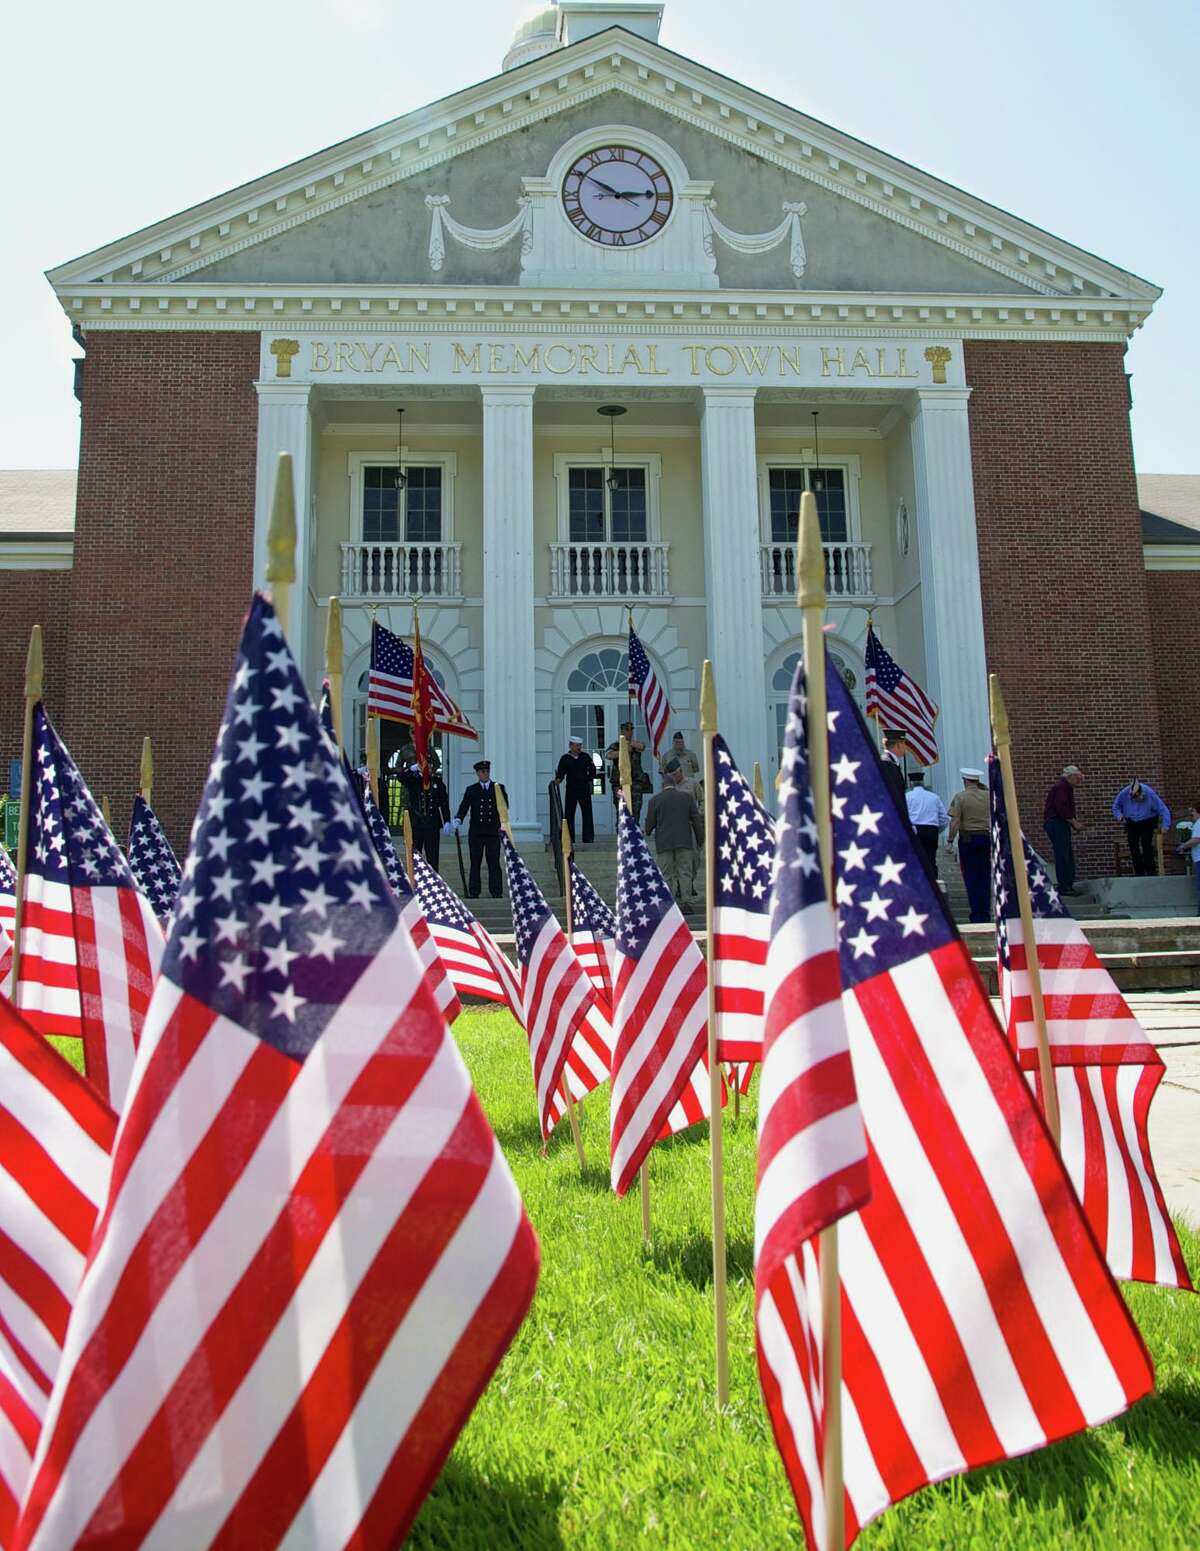 A Field of Flags honoring the men and women of the nation's armed services will grace the lawn fronting Bryan Memorial Town Hall in Washington Depot.